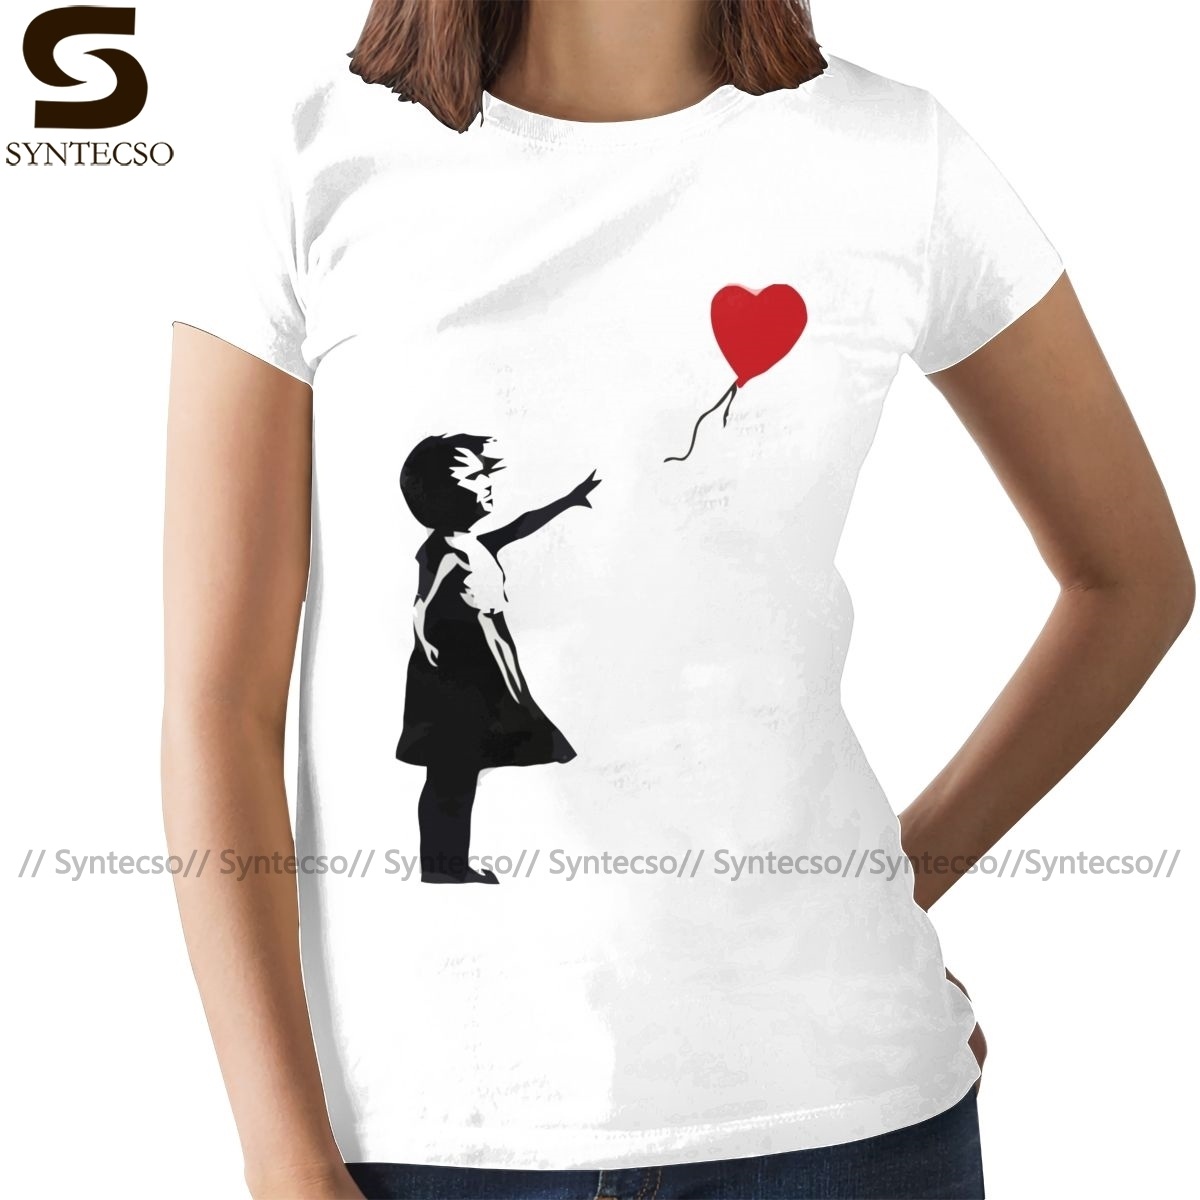 Heart Love T-Shirt Banksy Girl With Balloon T Shirt Trendy Purple Women tshirt Cotton Graphic Ladies Tee Shirt 1